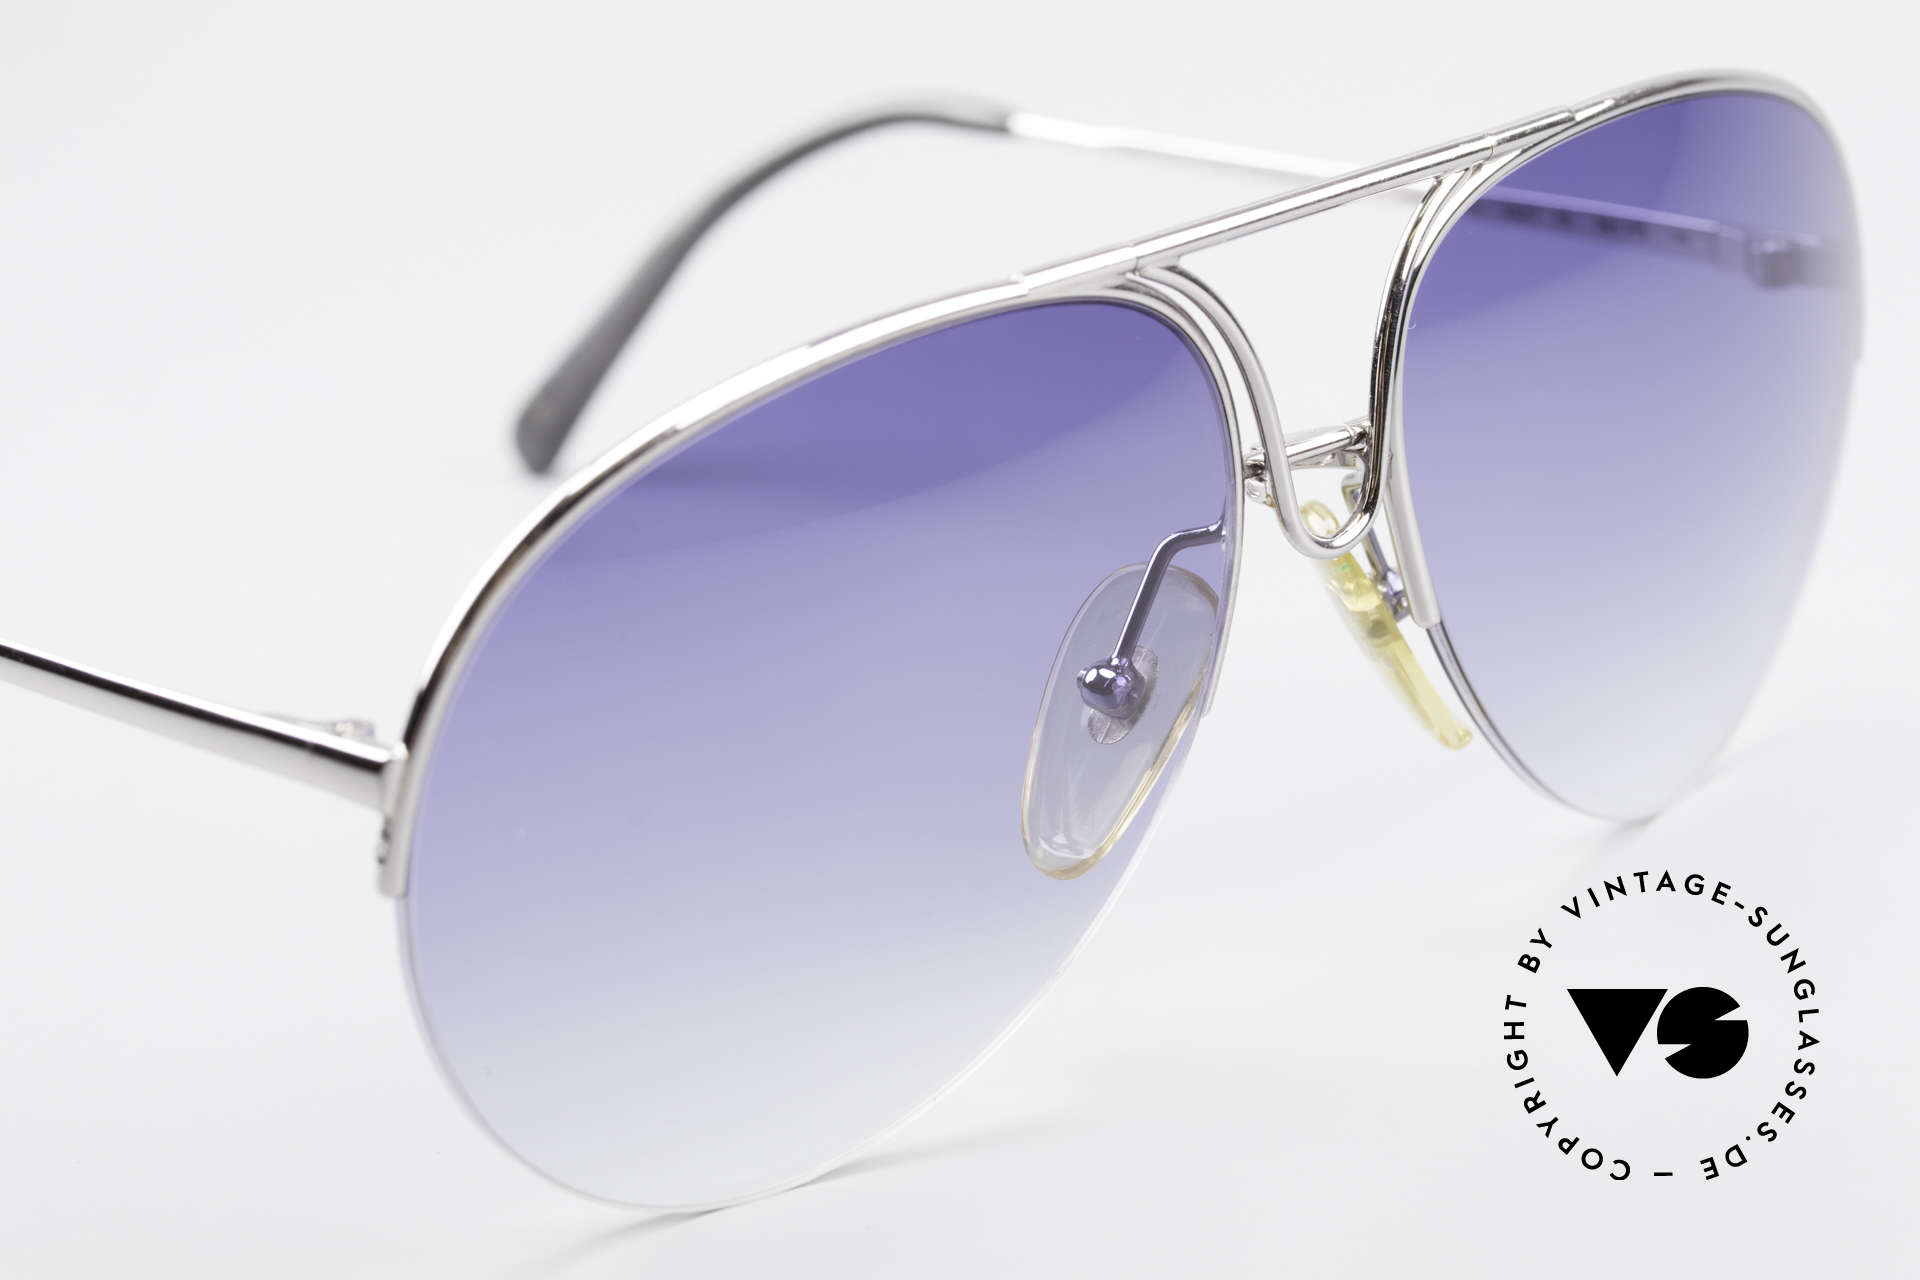 Porsche 5627 Semi Rimless 90's Sunglasses, NO RETRO sunglasses, but an original from 1991, Made for Men